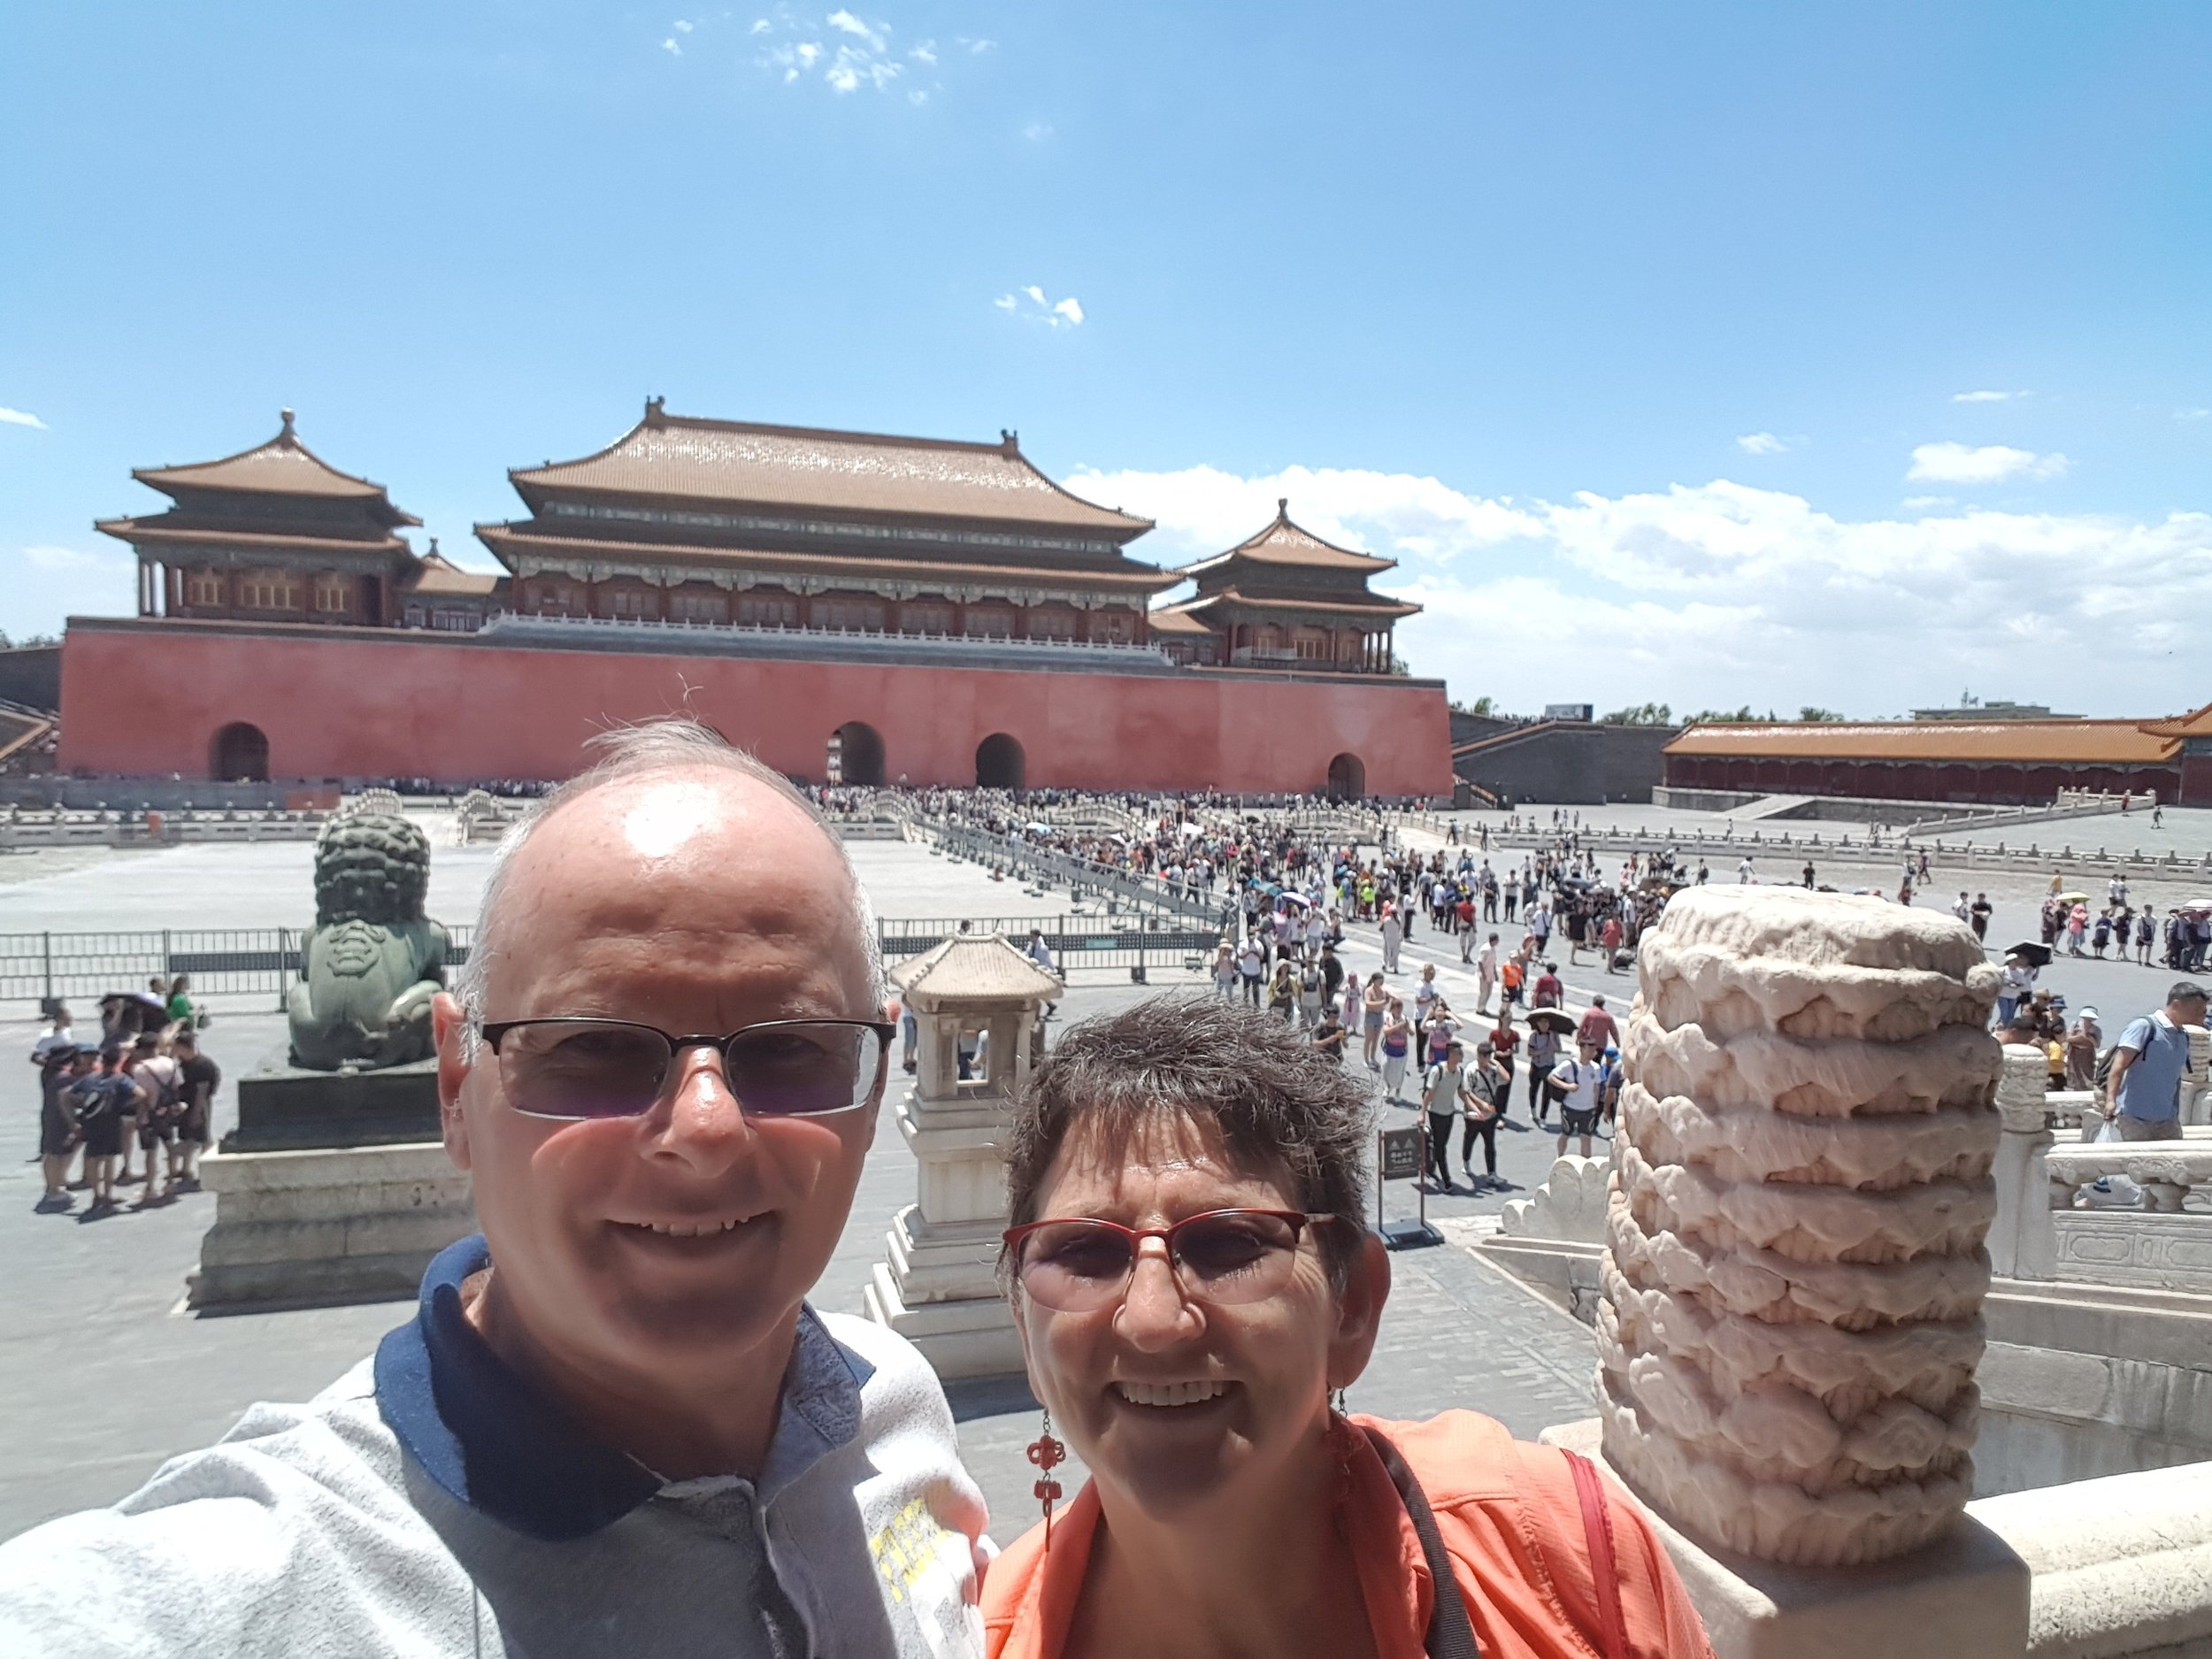 Inside the Forbidden City - impressive for its size